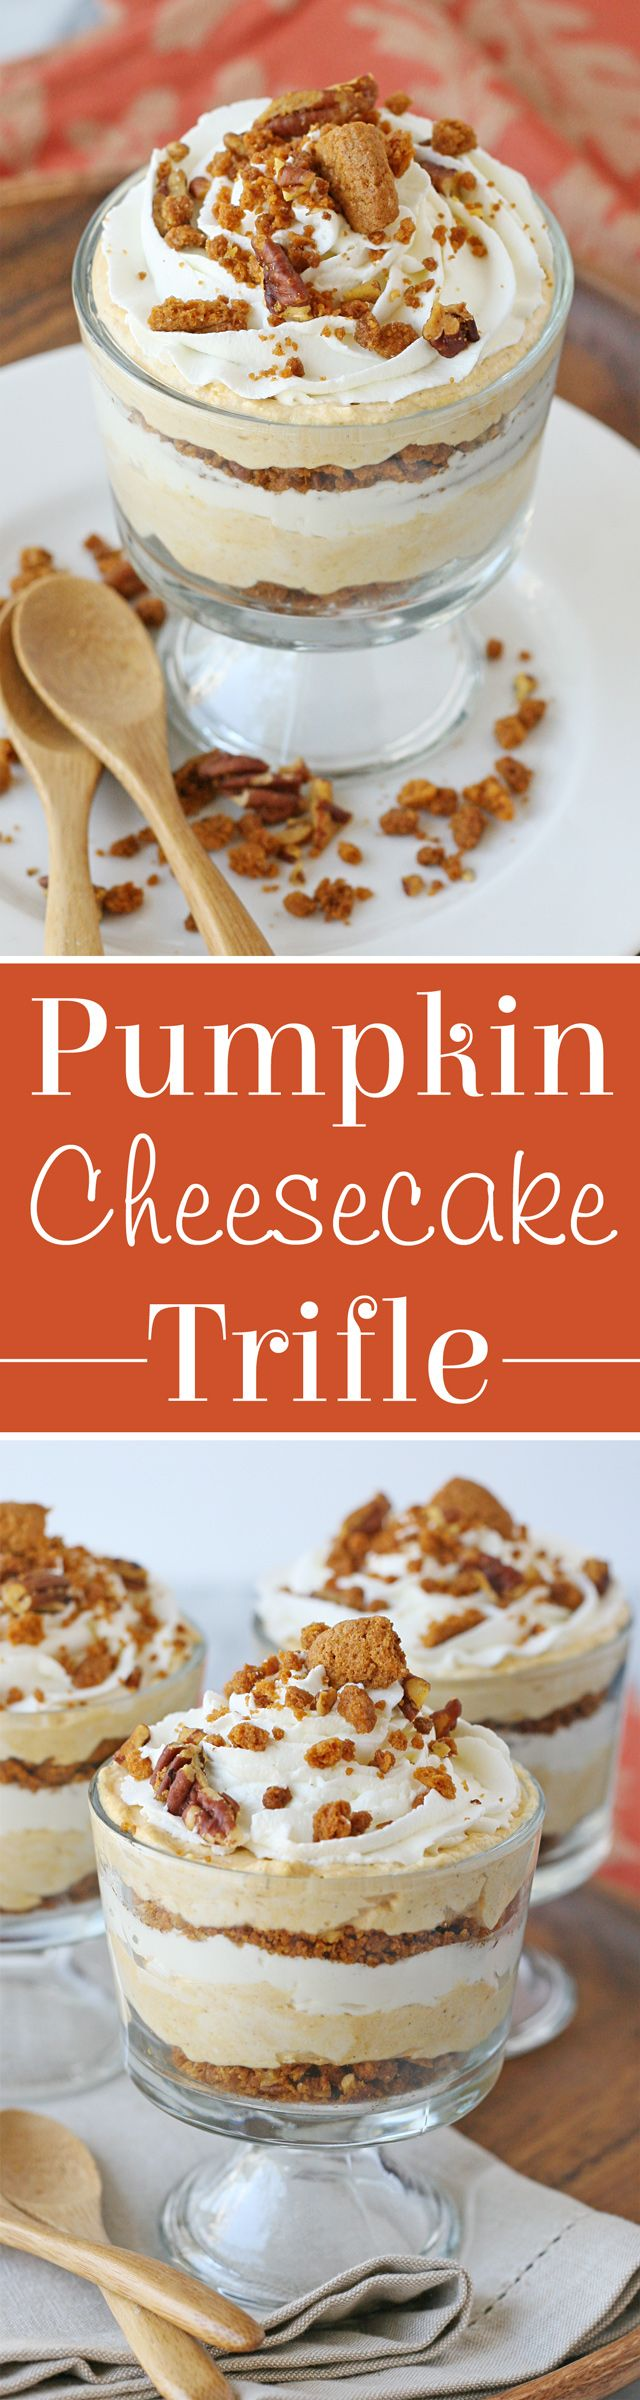 Creamy, flavorful and delicious PUMPKIN CHEESECAKE TRIFLE recipe!